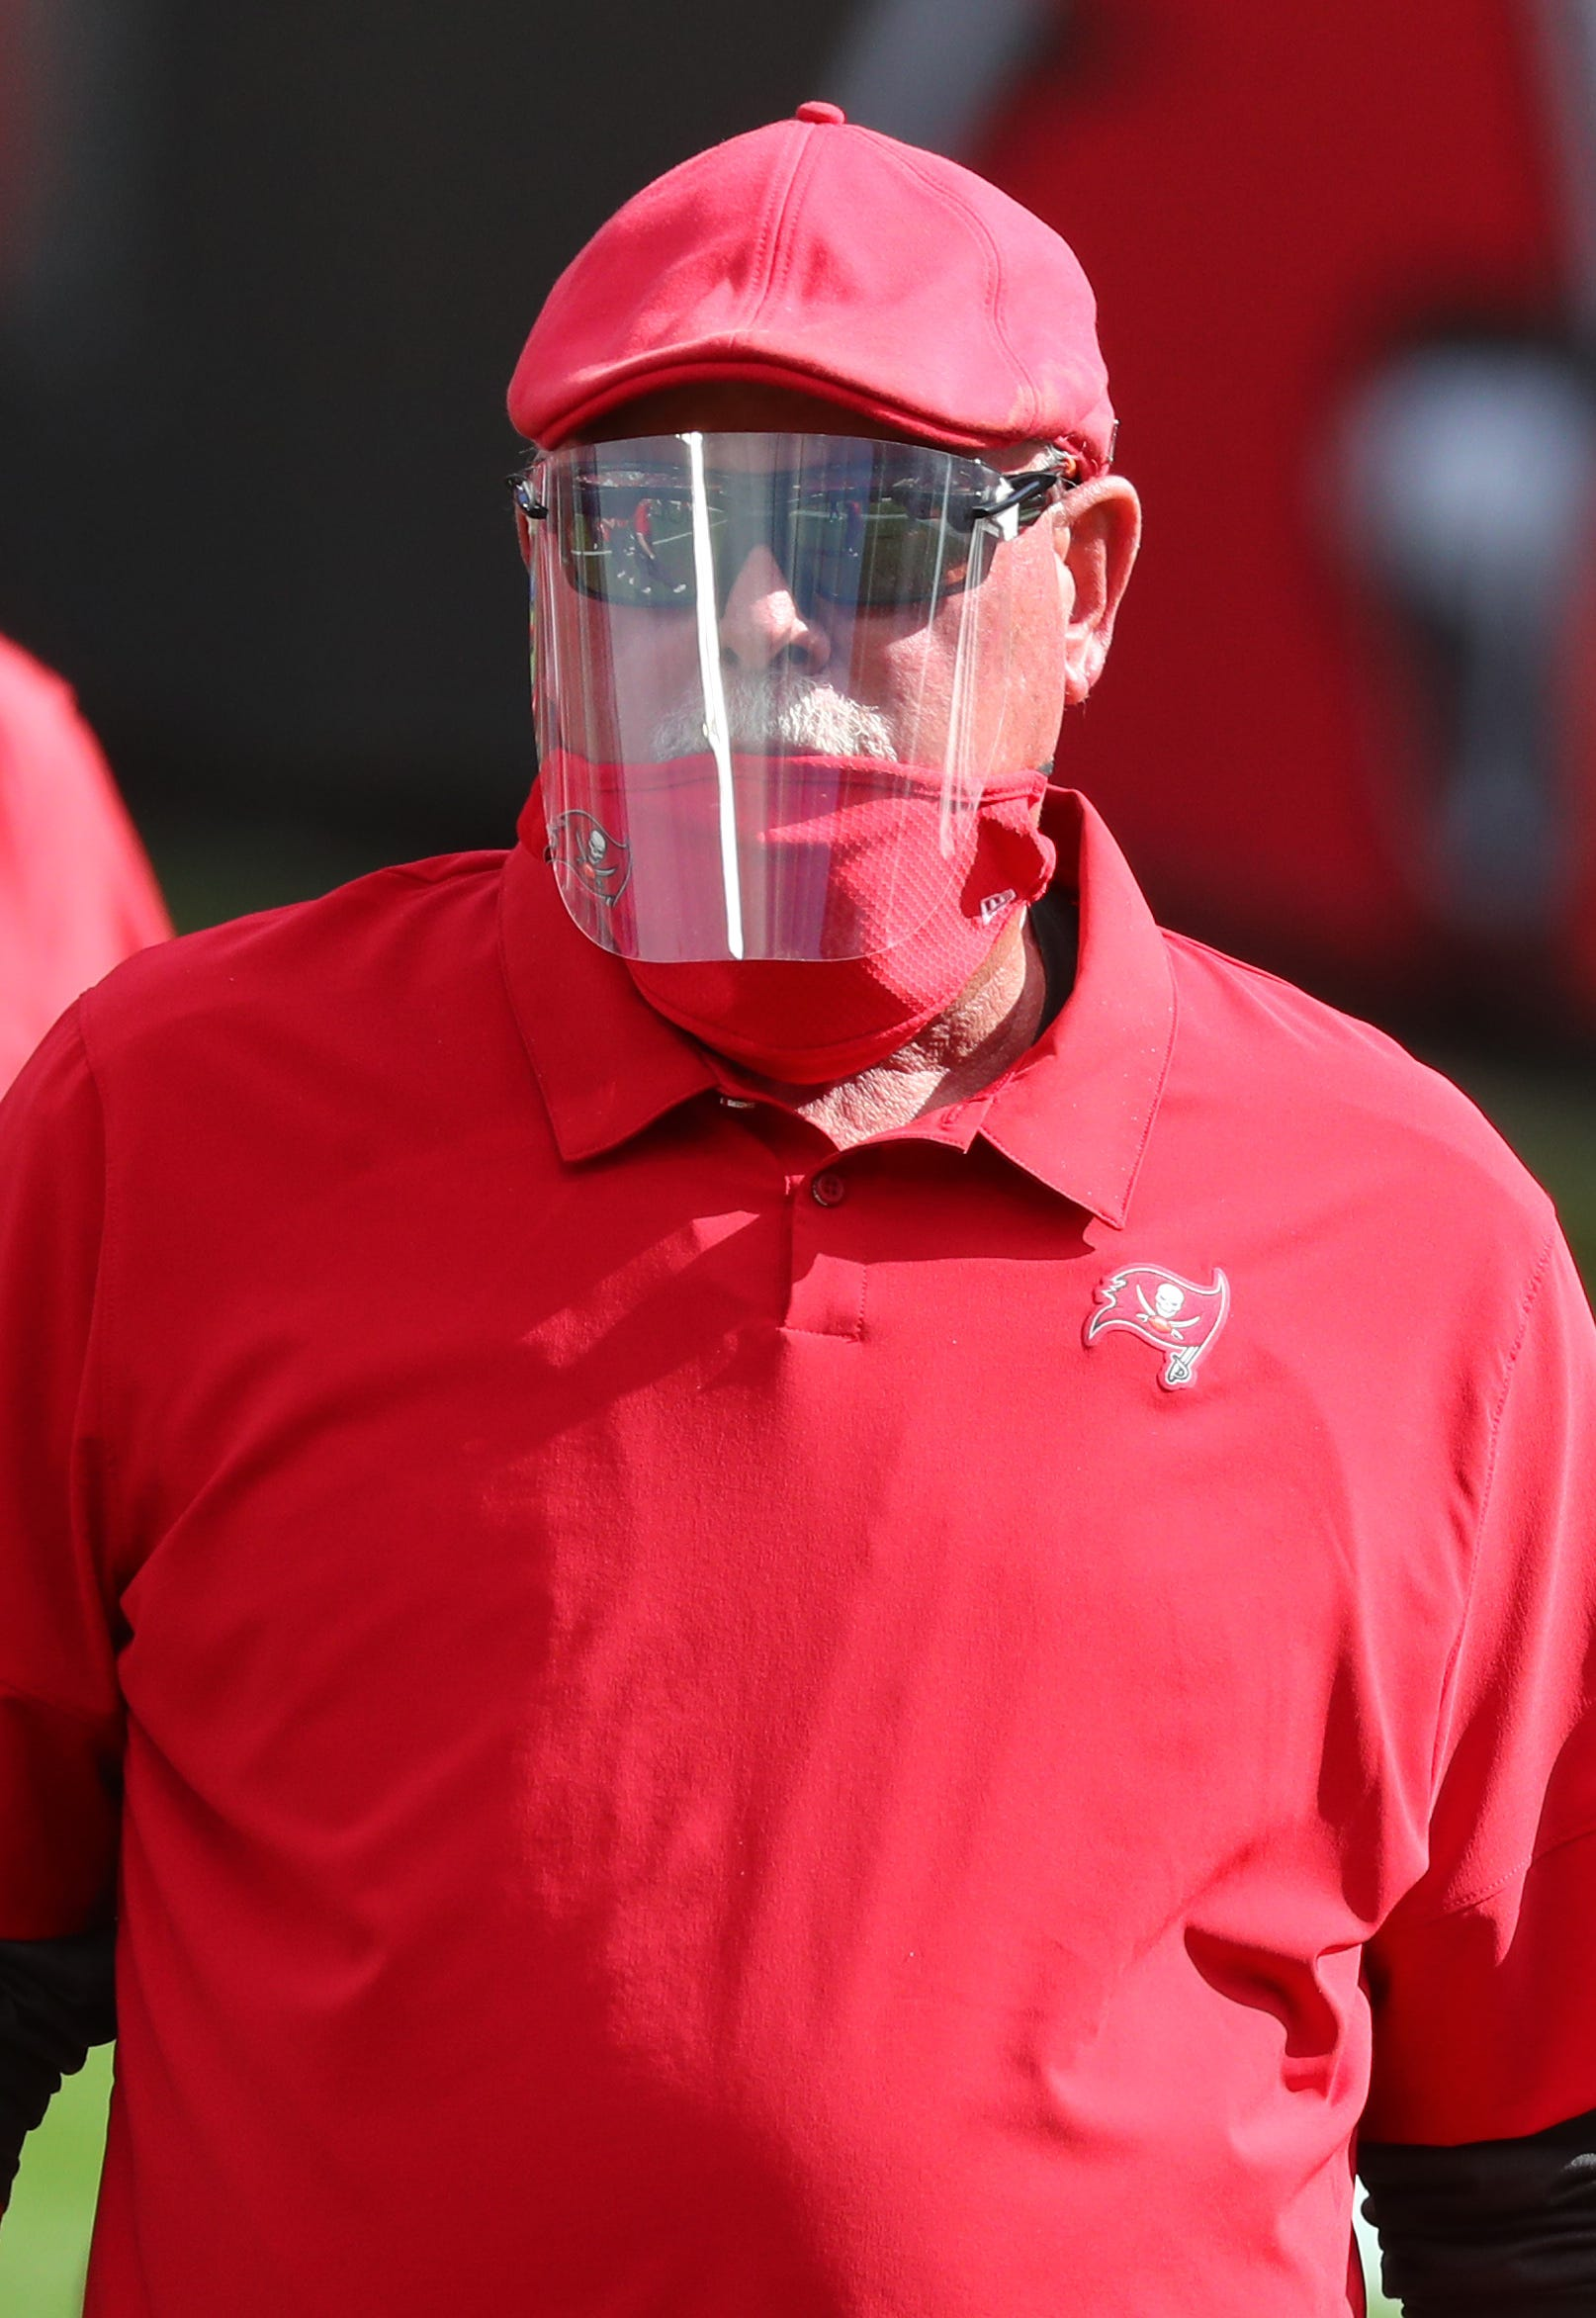 Buccaneers coach Bruce Arians sends message to players: 'Get vaccinated' for COVID-19